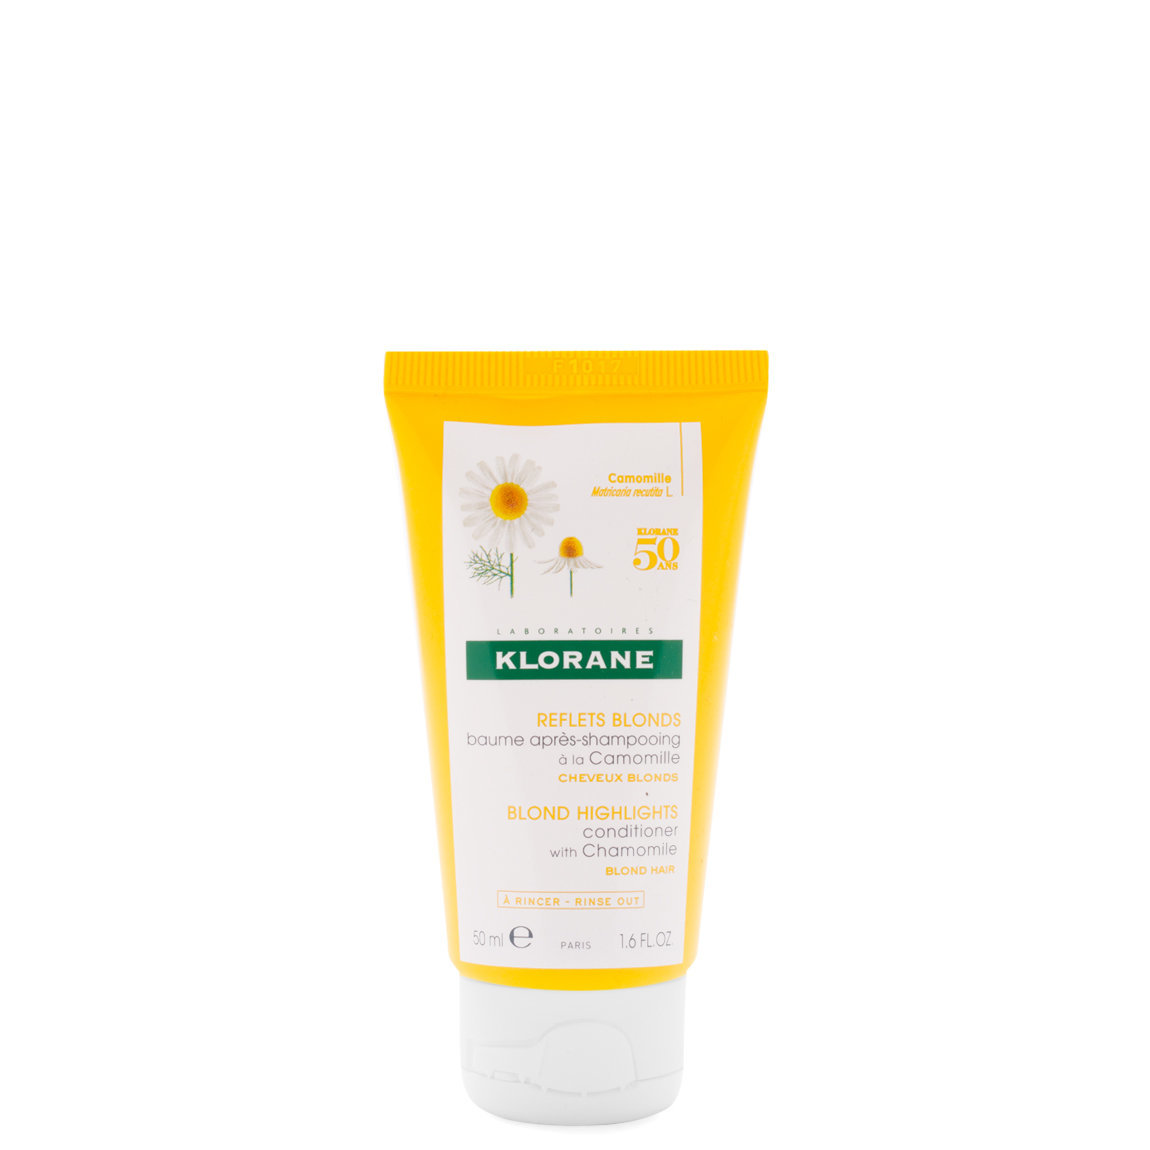 Klorane Conditioner with Chamomile 1.6 oz product smear.